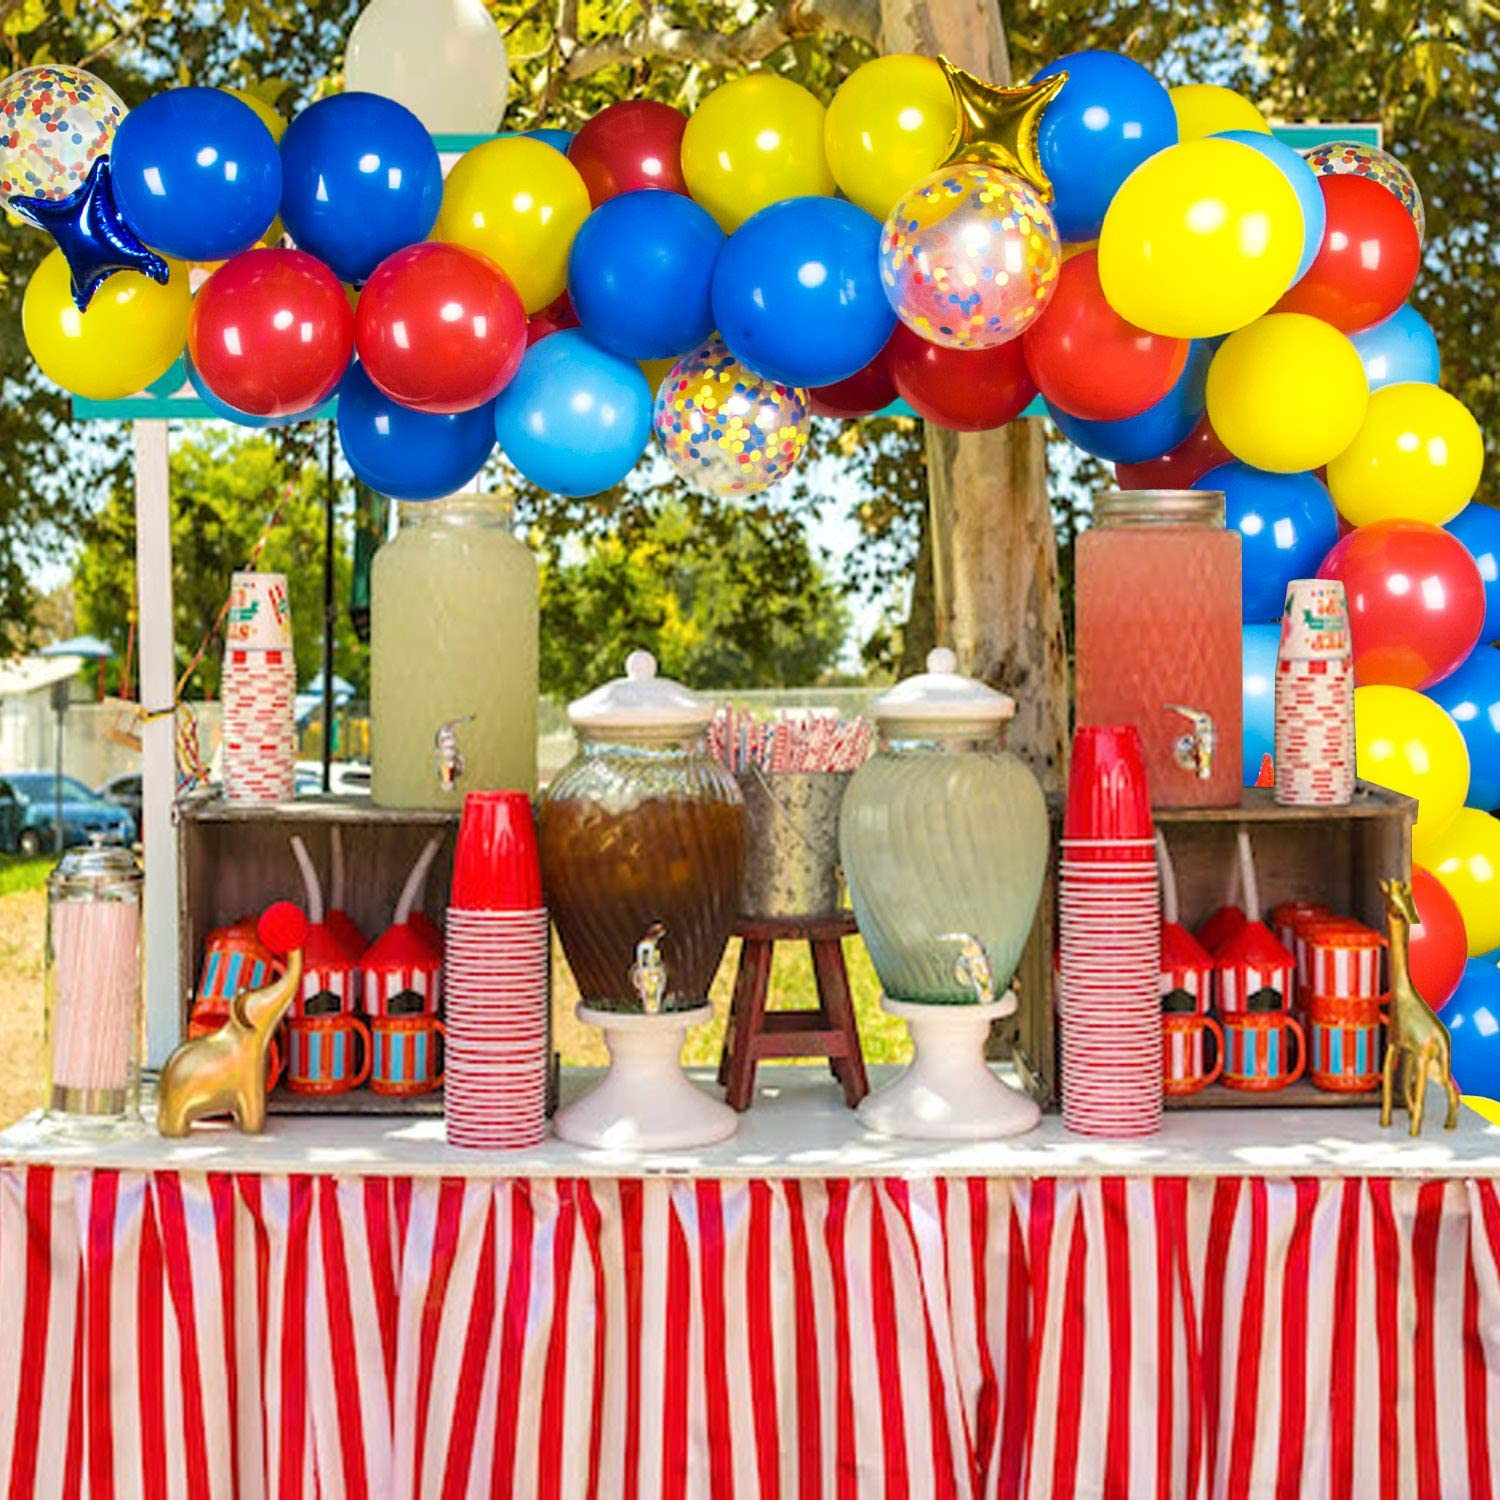 Carnival Circus Balloon Garland Arch Kit Blue Red Yellow Balloons Party Decor for Carnival Theme Baby Shower Wedding Birthday